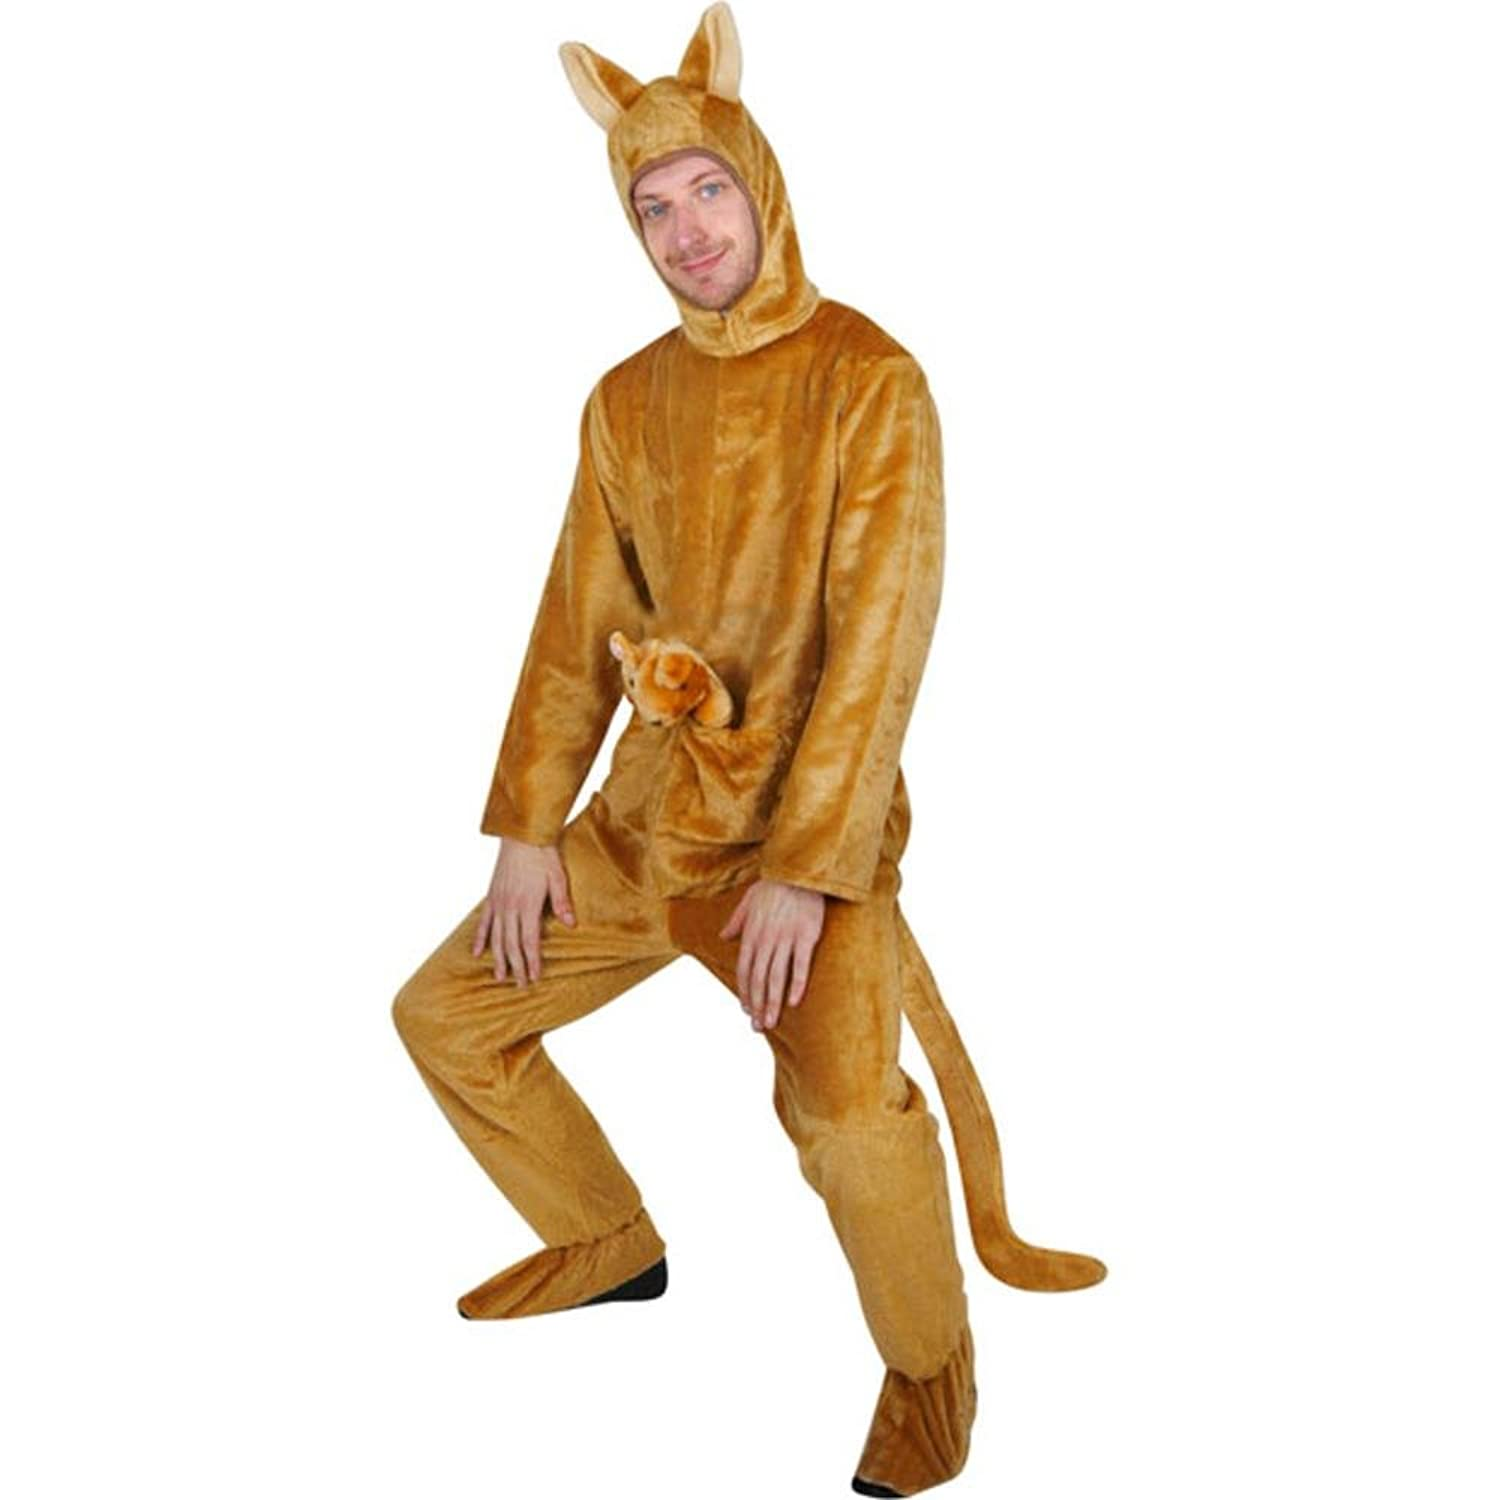 amazoncom adult kangaroo costume size adult standard clothing - Amazon Halloween Costumes Men